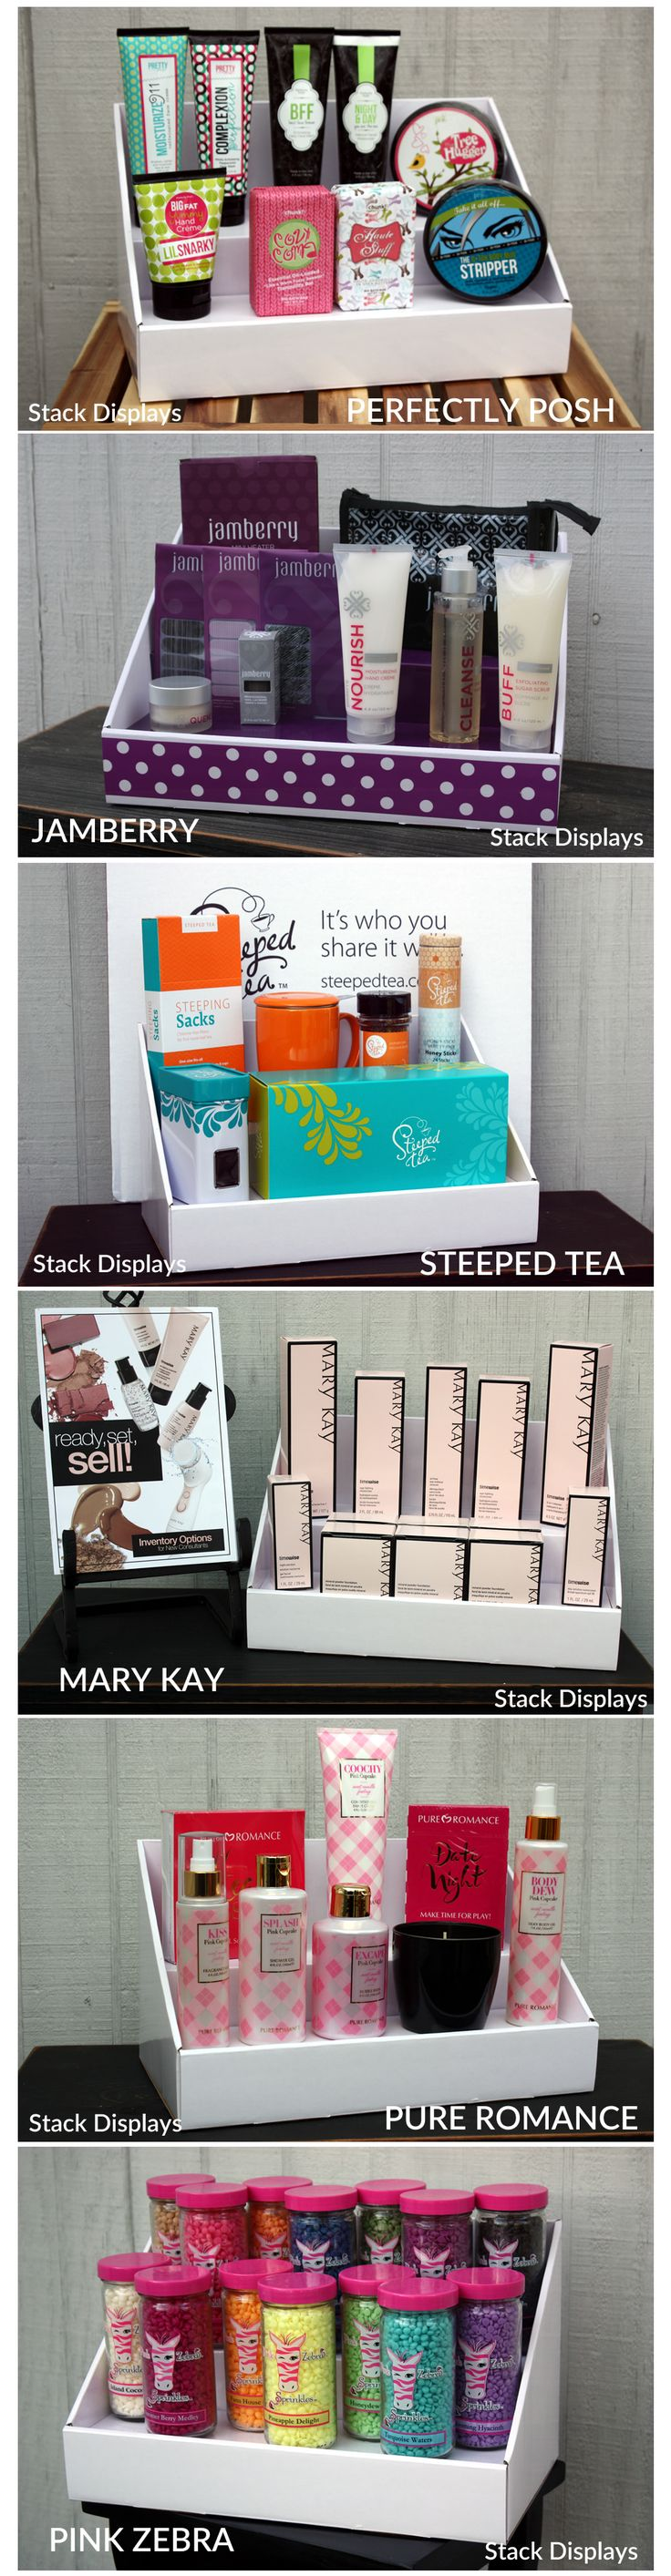 White Cardboard Counter Displays from Stack Displays. Shown here with products from different Direct Sales Companies. Perfectly Posh, Jamberry Nails, Steeped Tea, Mary Kay, Pure Romance and Pink Zebra Home.These displays are a crisp white color and come with a unique laminated finish. Many different color and design options to choose from. Use at vendor events, craft shows, home parties or festivals when displaying your products.